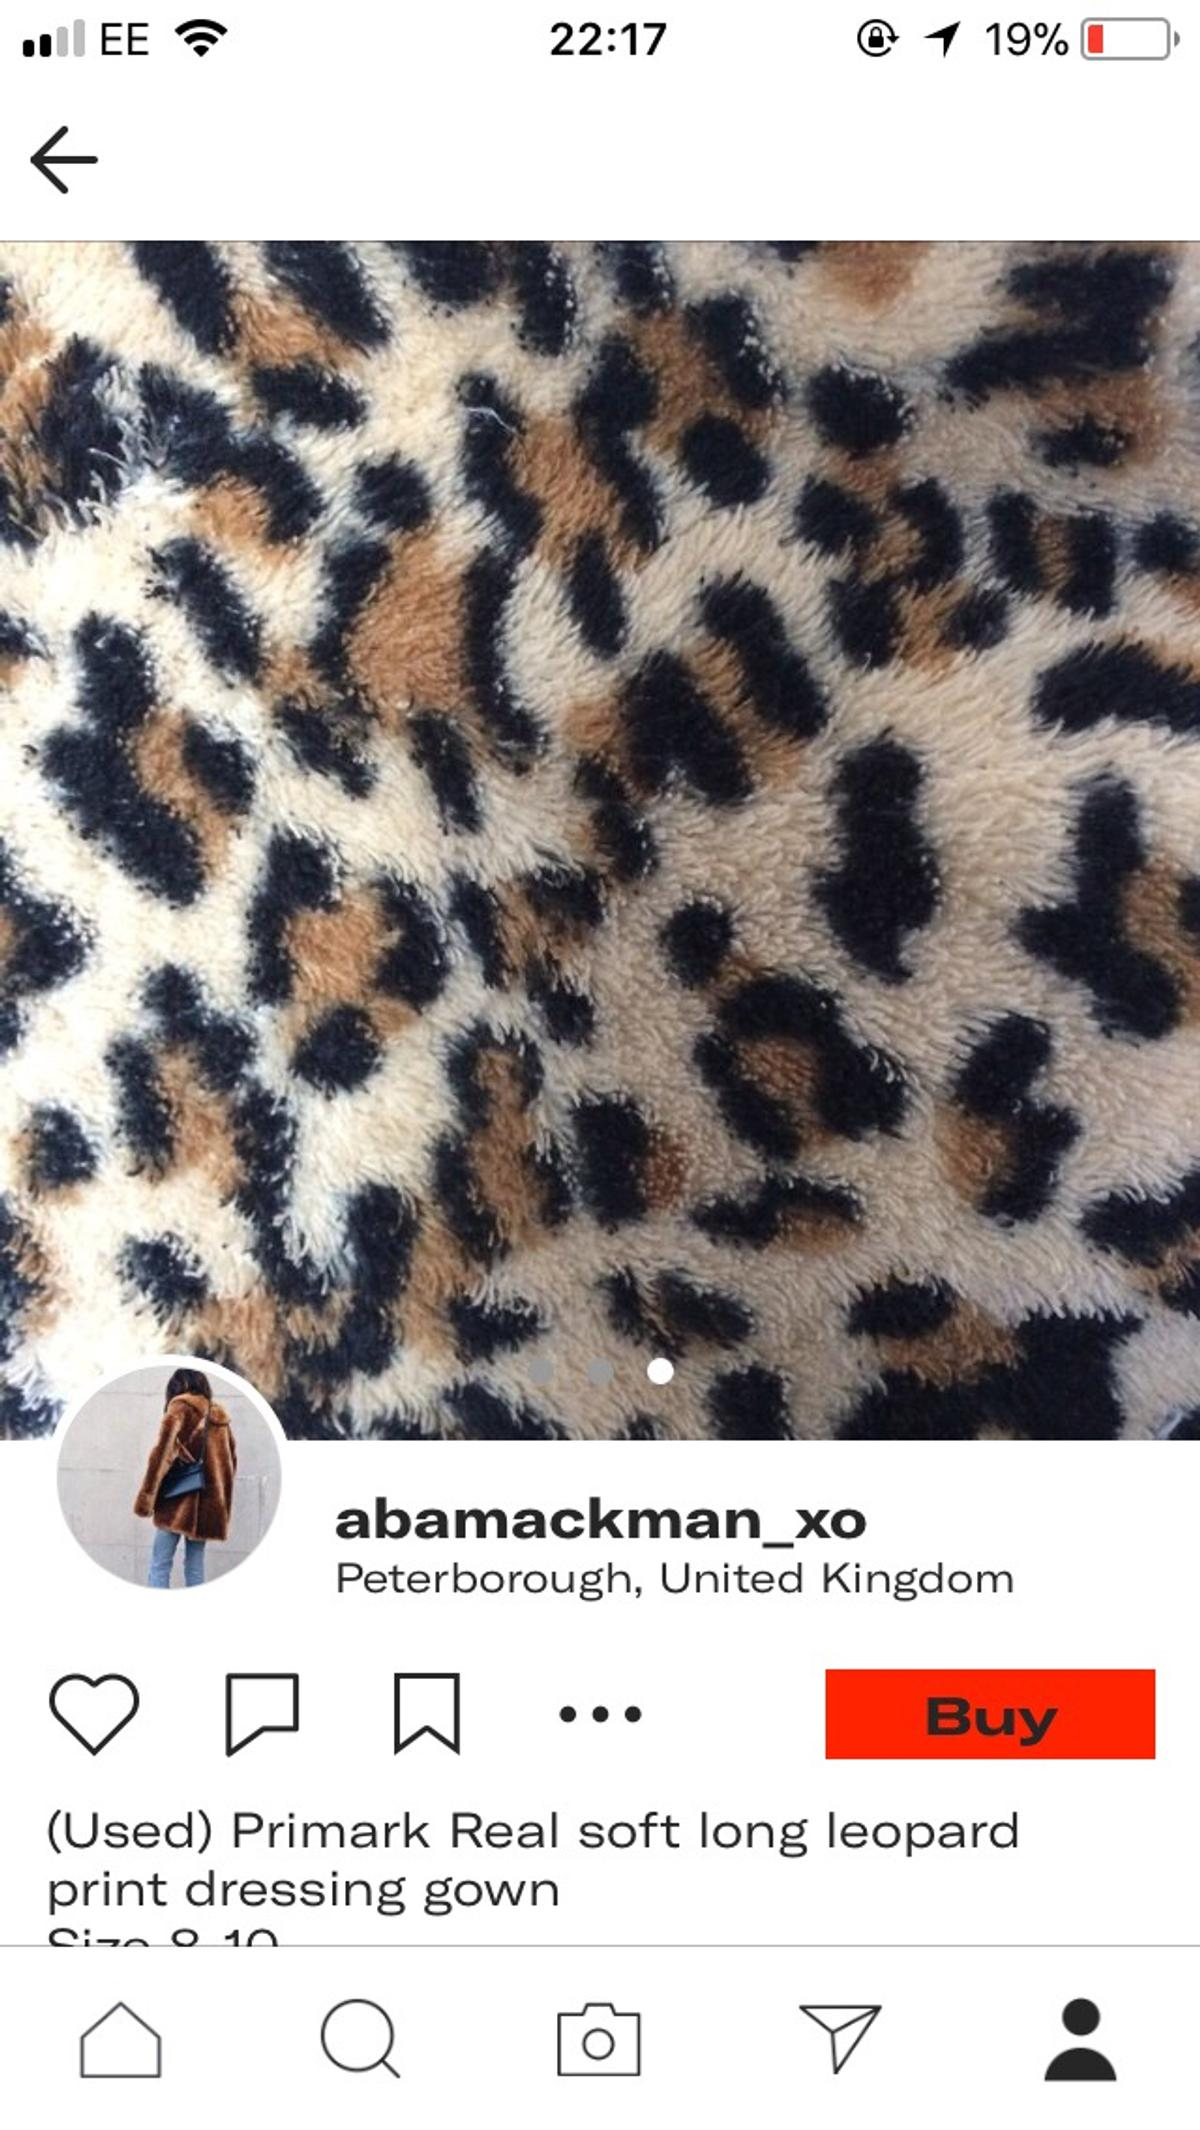 Primark Leopard Print Dressing Gown